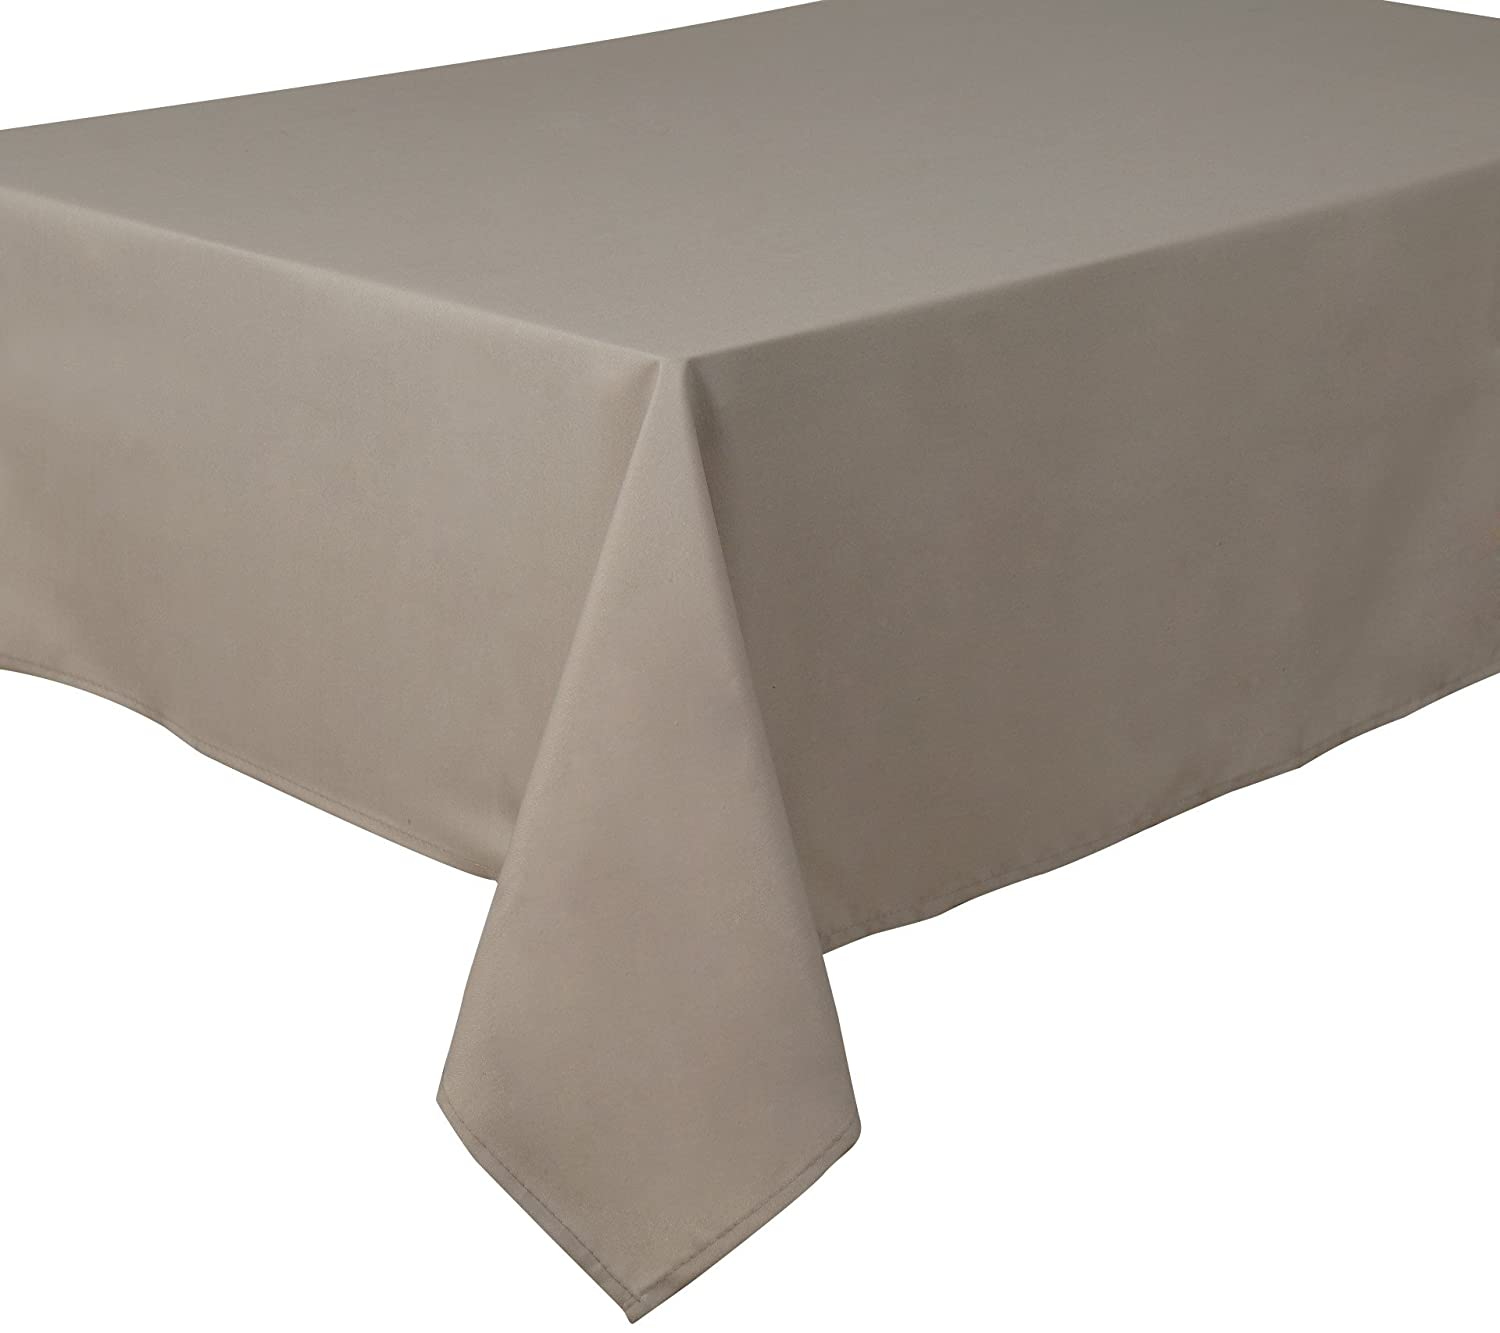 Home Direct Mantel 100% poliéster, Rectangular 140 x 240cm Taupe